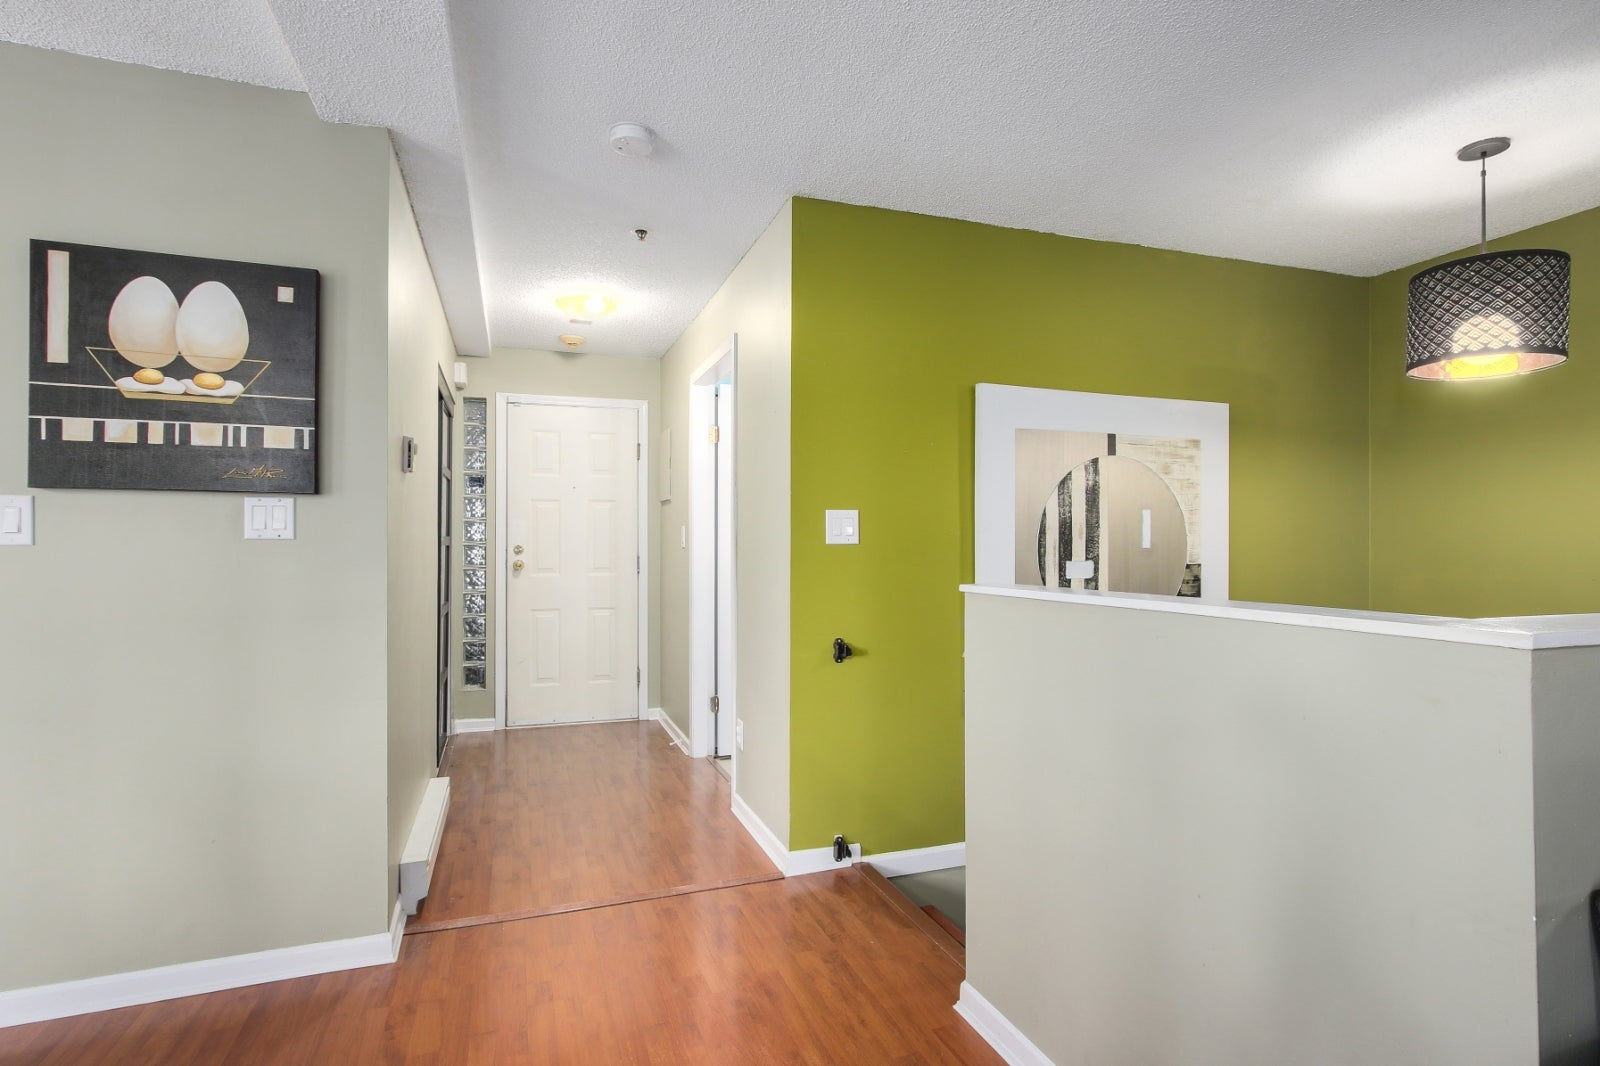 9 7345 SANDBORNE AVENUE - South Slope Townhouse for sale, 2 Bedrooms (R2165161) #2